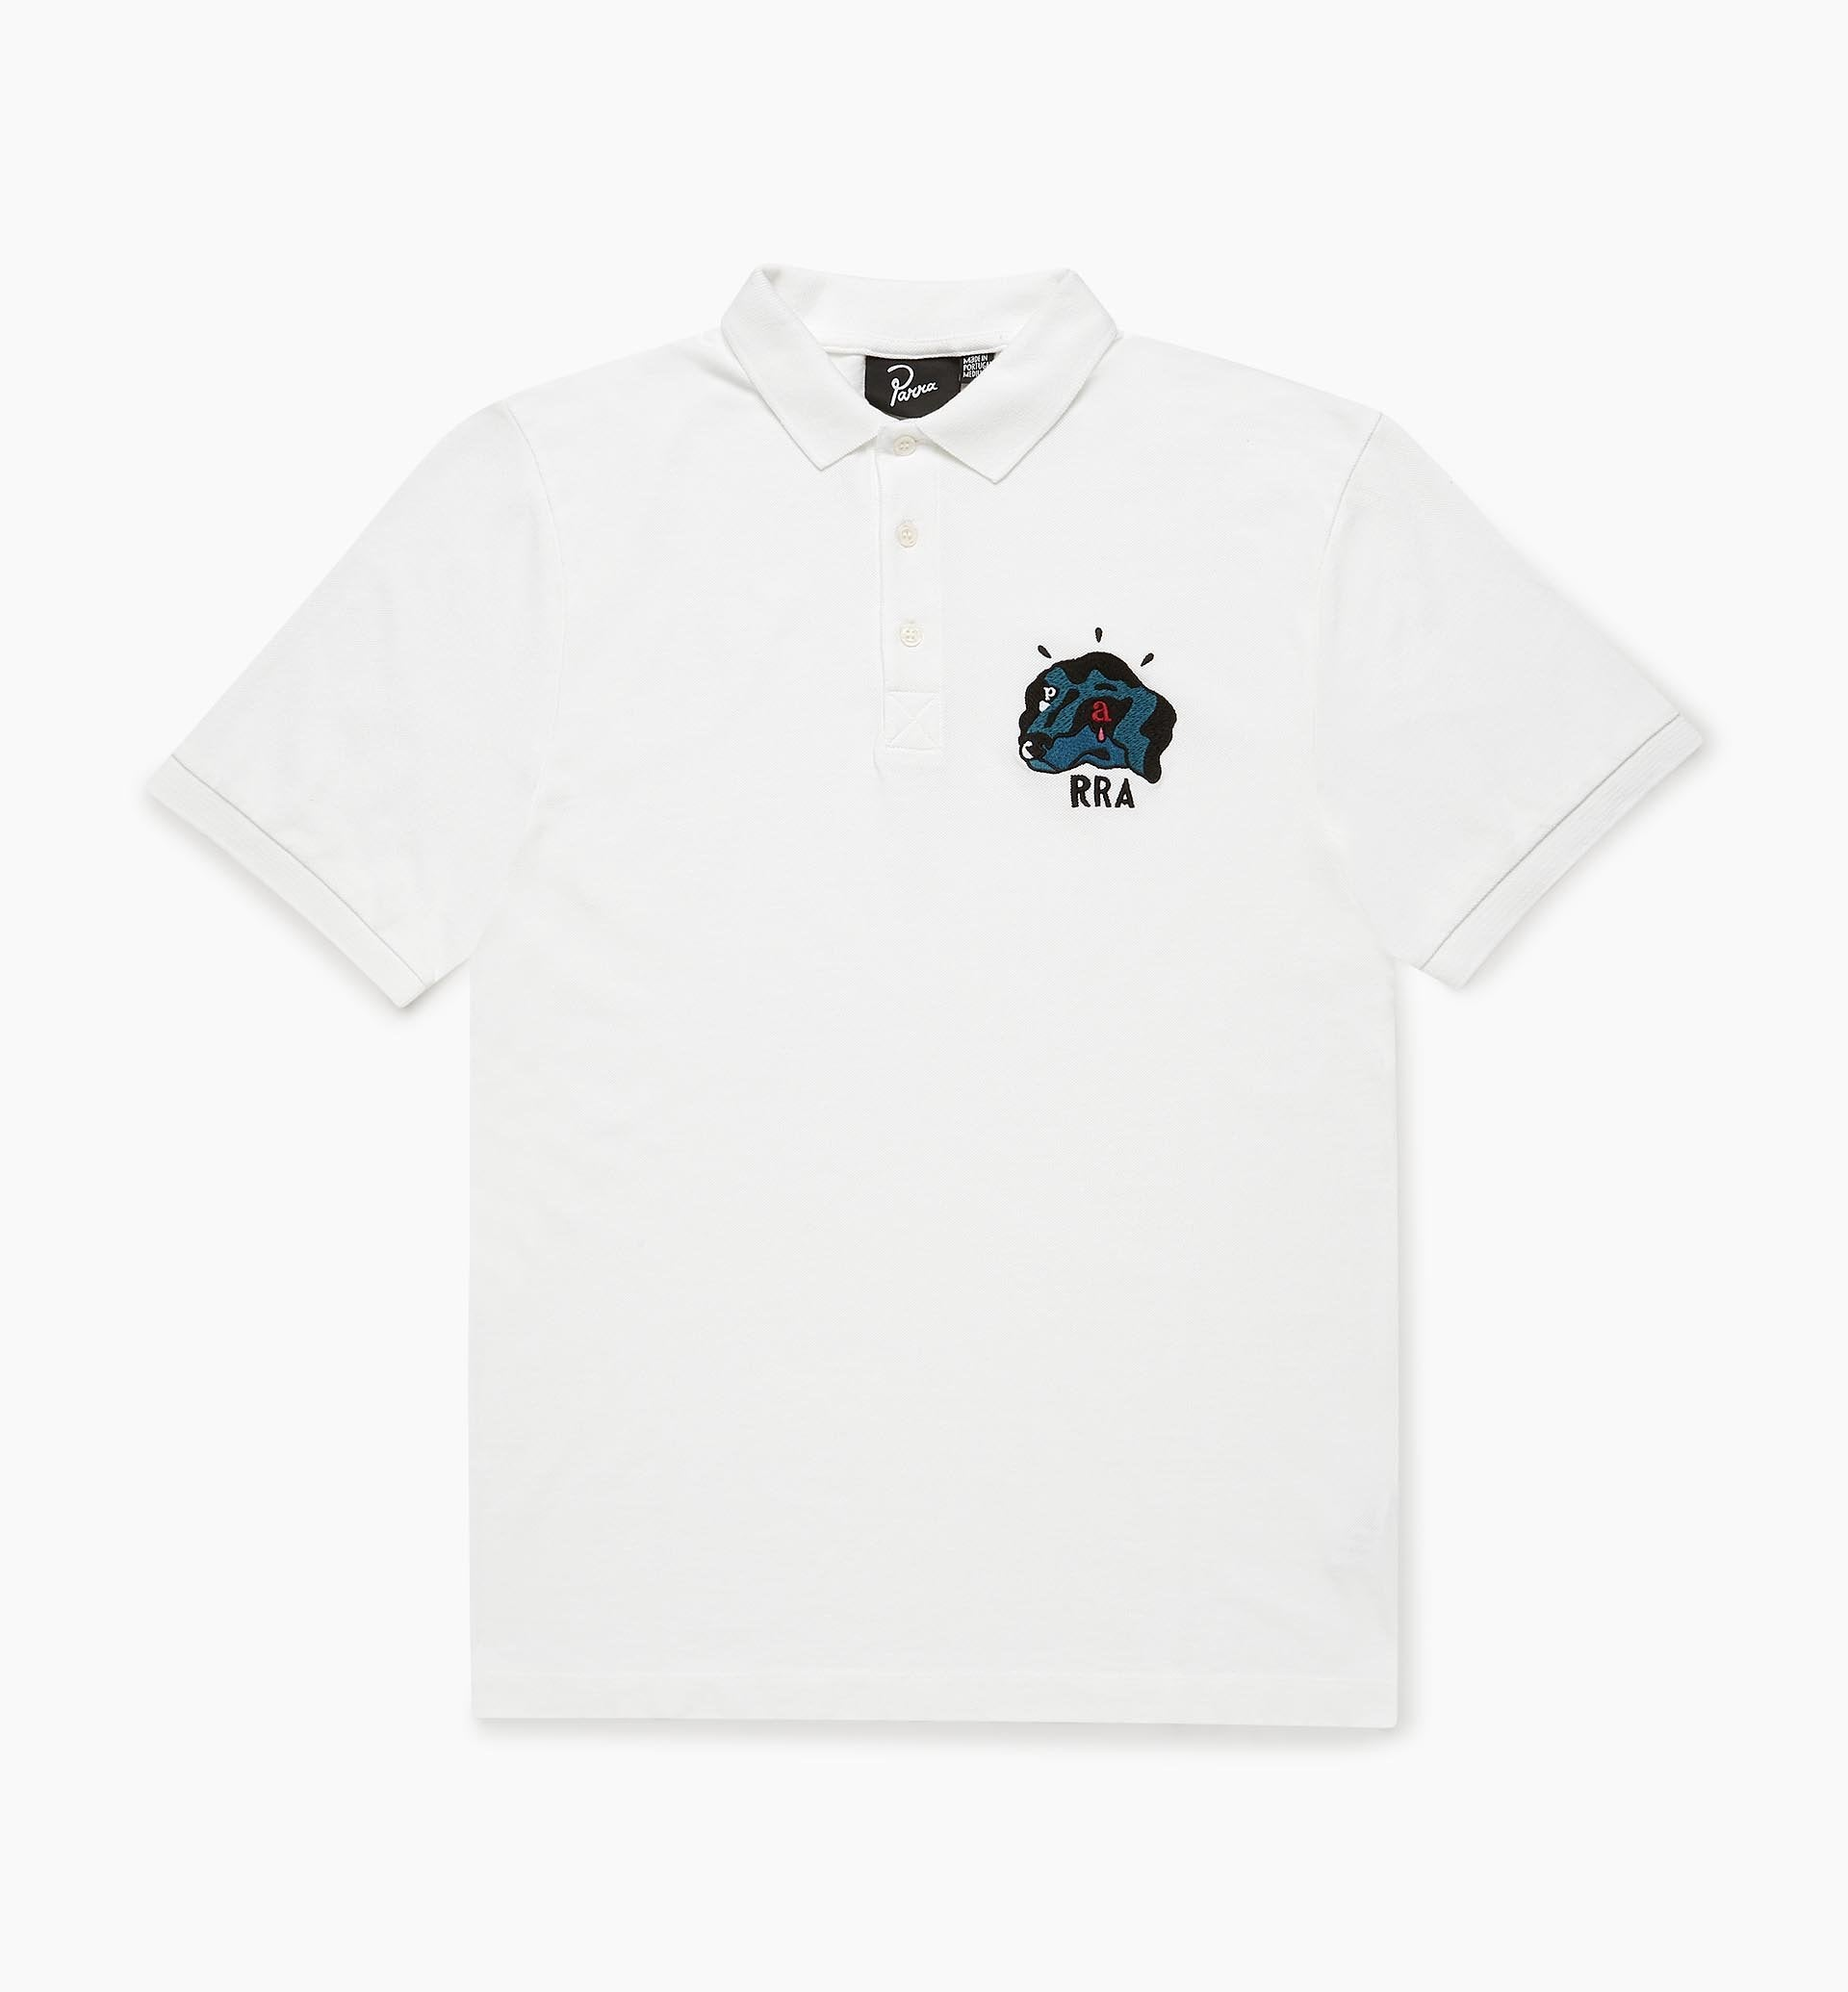 PARRA M'S T-SHIRTS DOGFACED POLO SHIRT